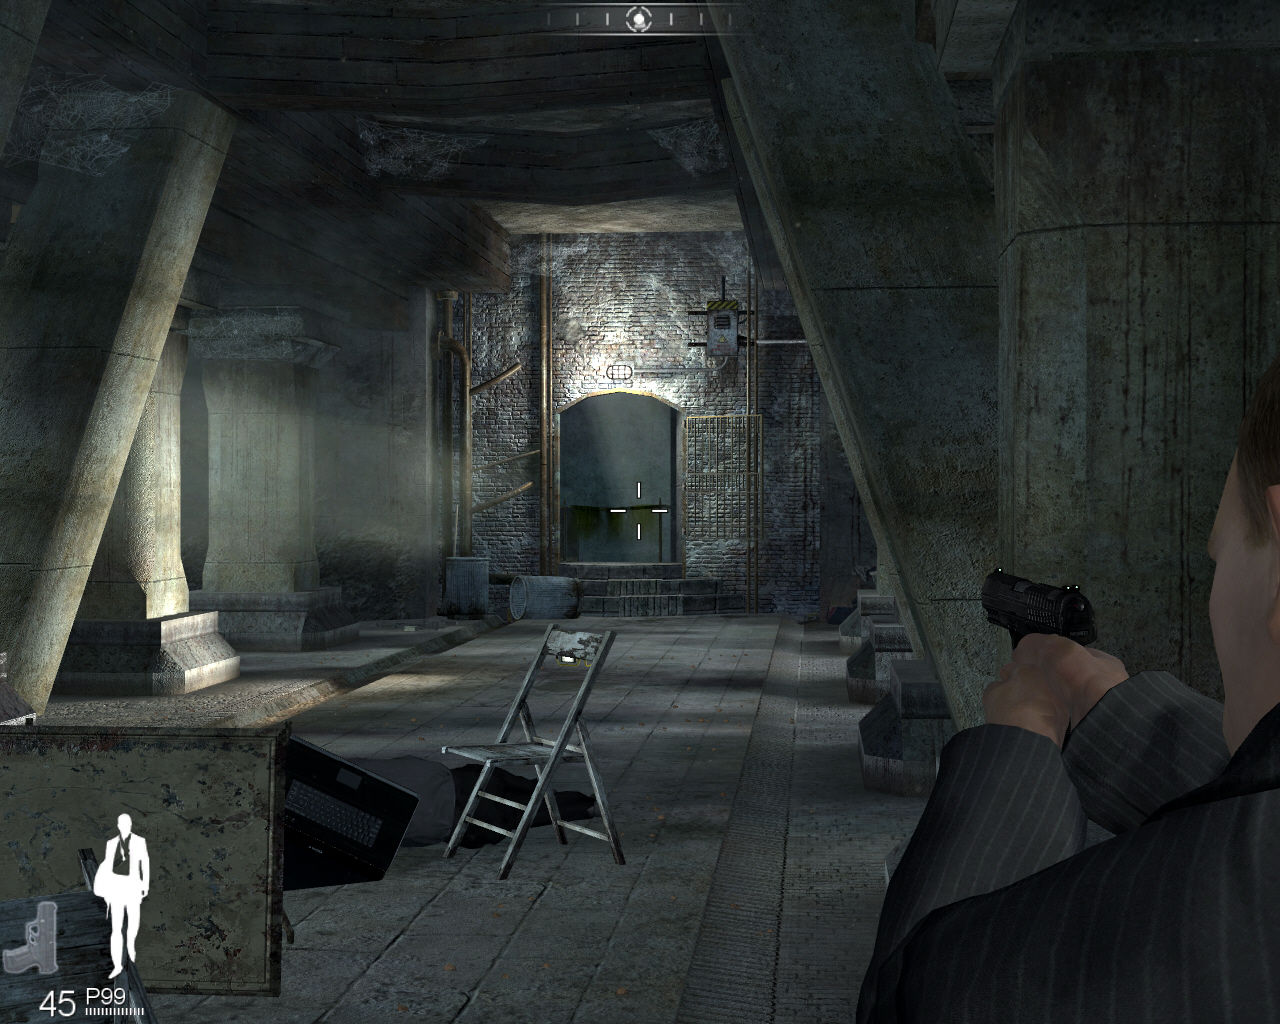 007: Quantum of Solace Windows At MI-6 safehouse.